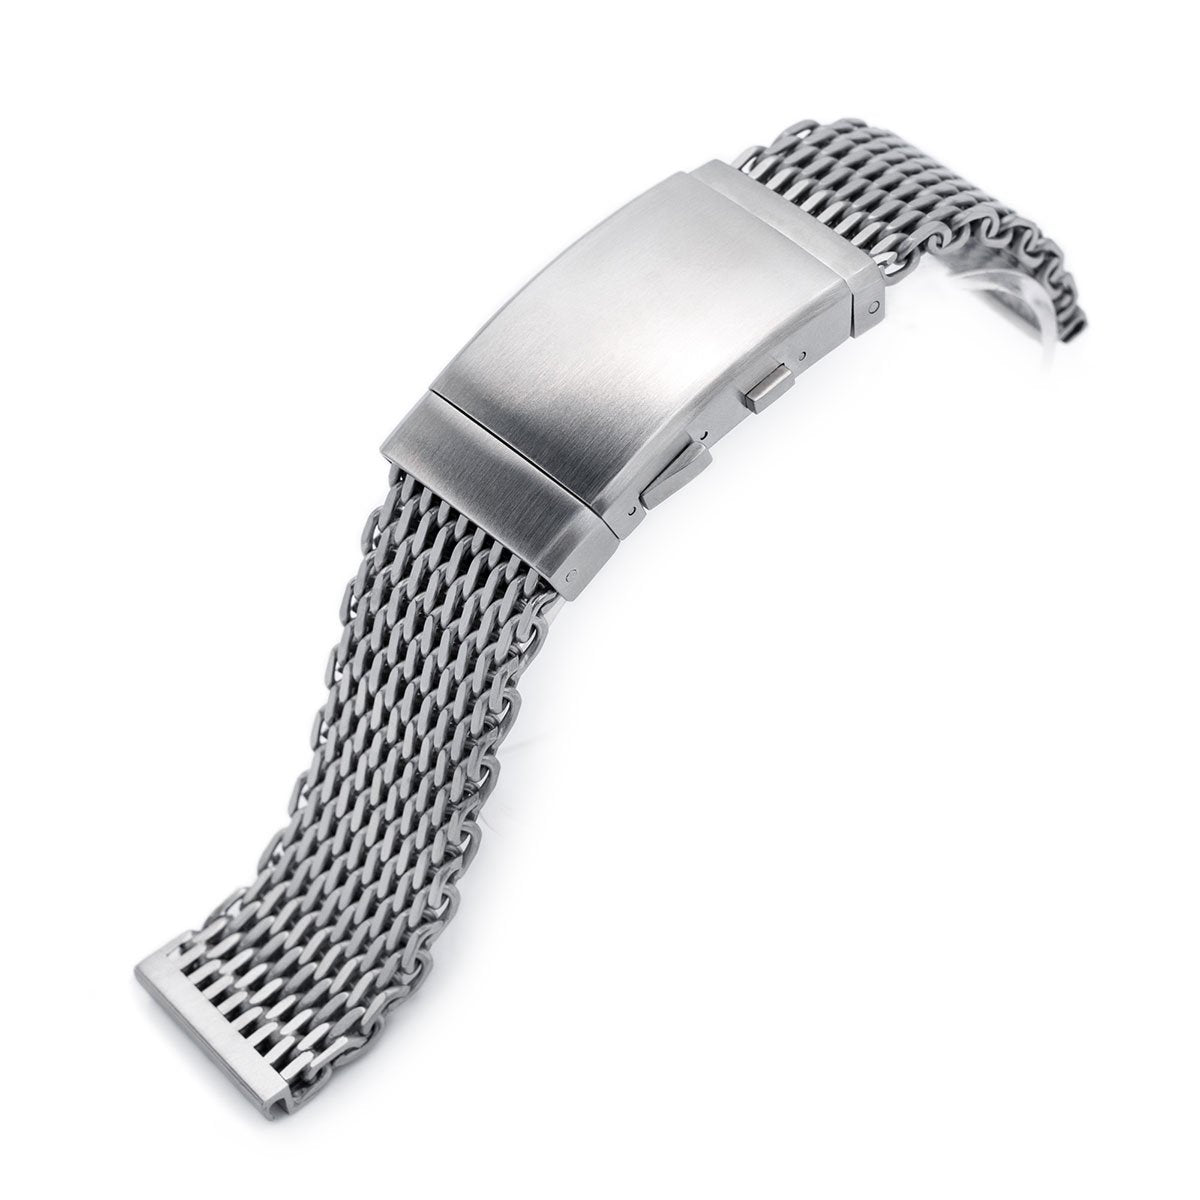 22mm Winghead SHARK Mesh Band Stainless Steel Watch Bracelet Wetsuit Ratchet Buckle Brushed Strapcode Watch Bands